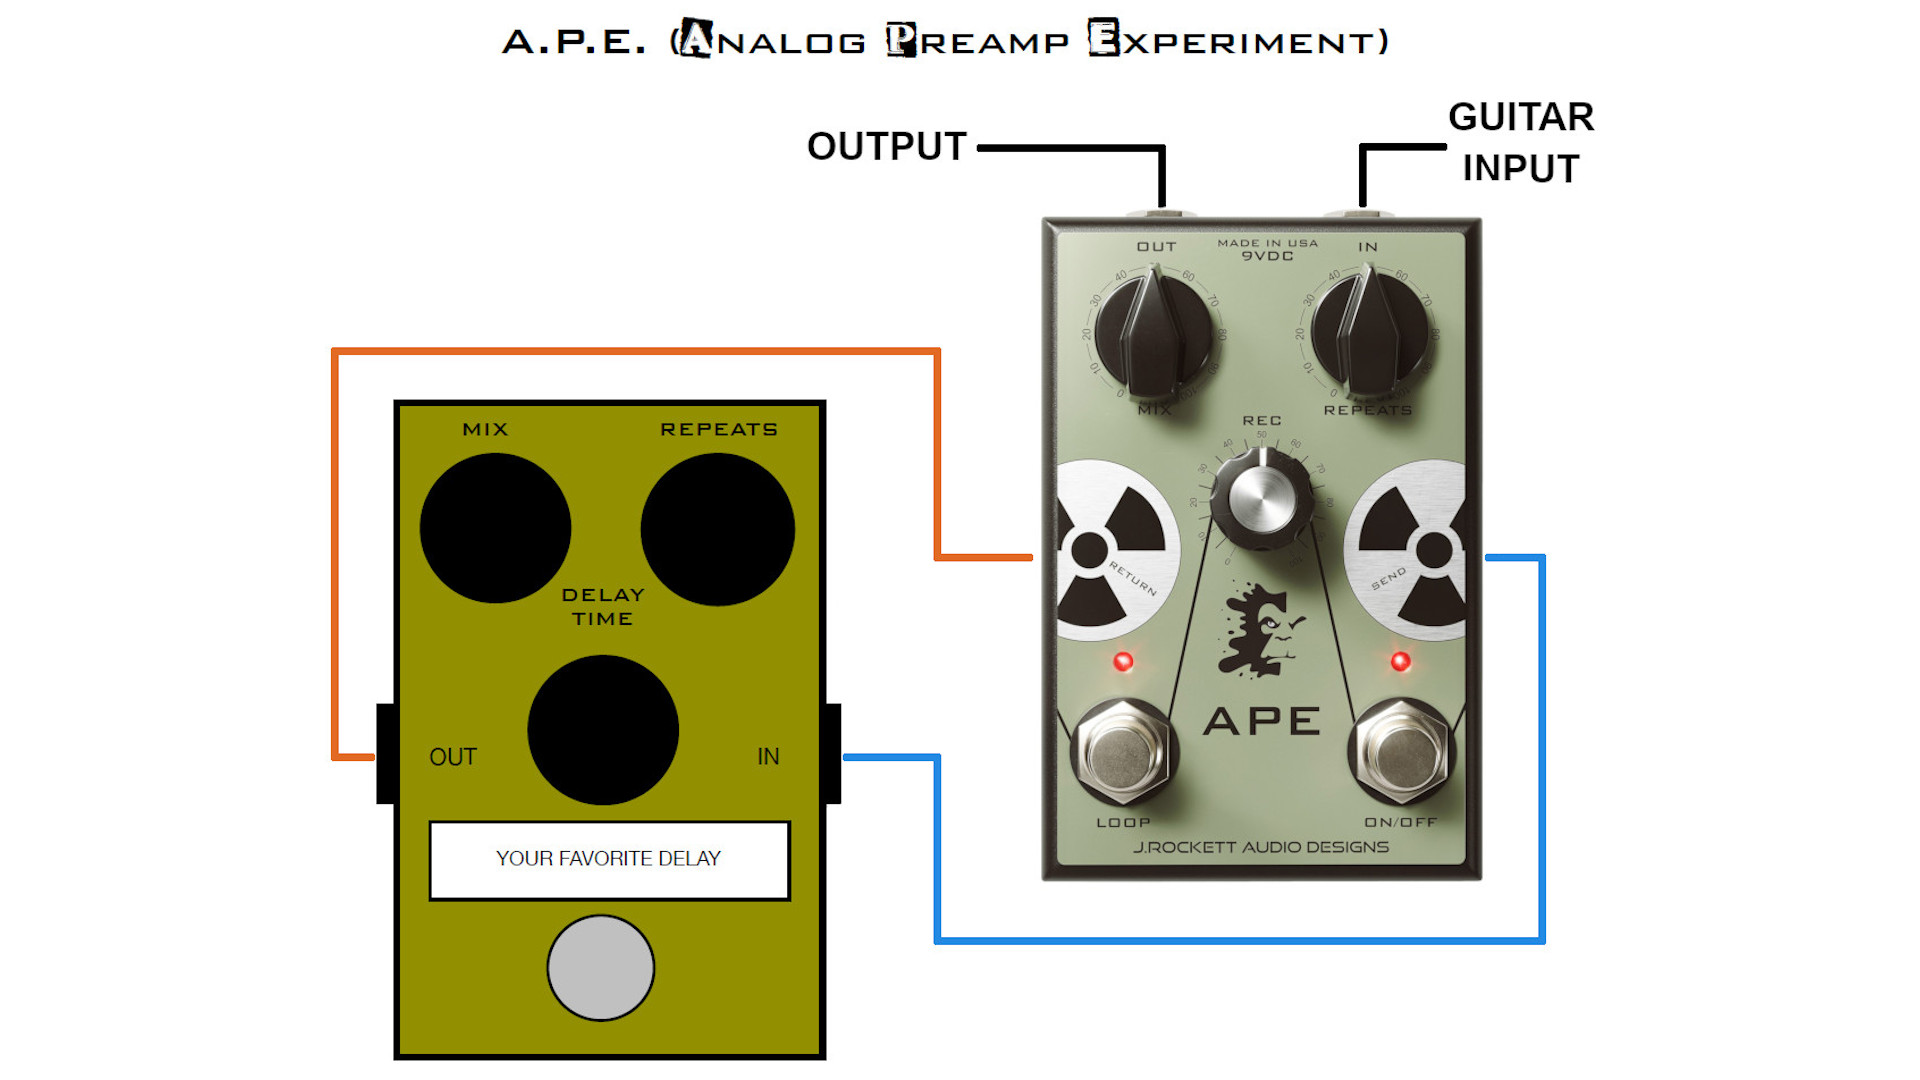 J. Rockett Audio Designs Analog Preamp Experiment (A.P.E.)